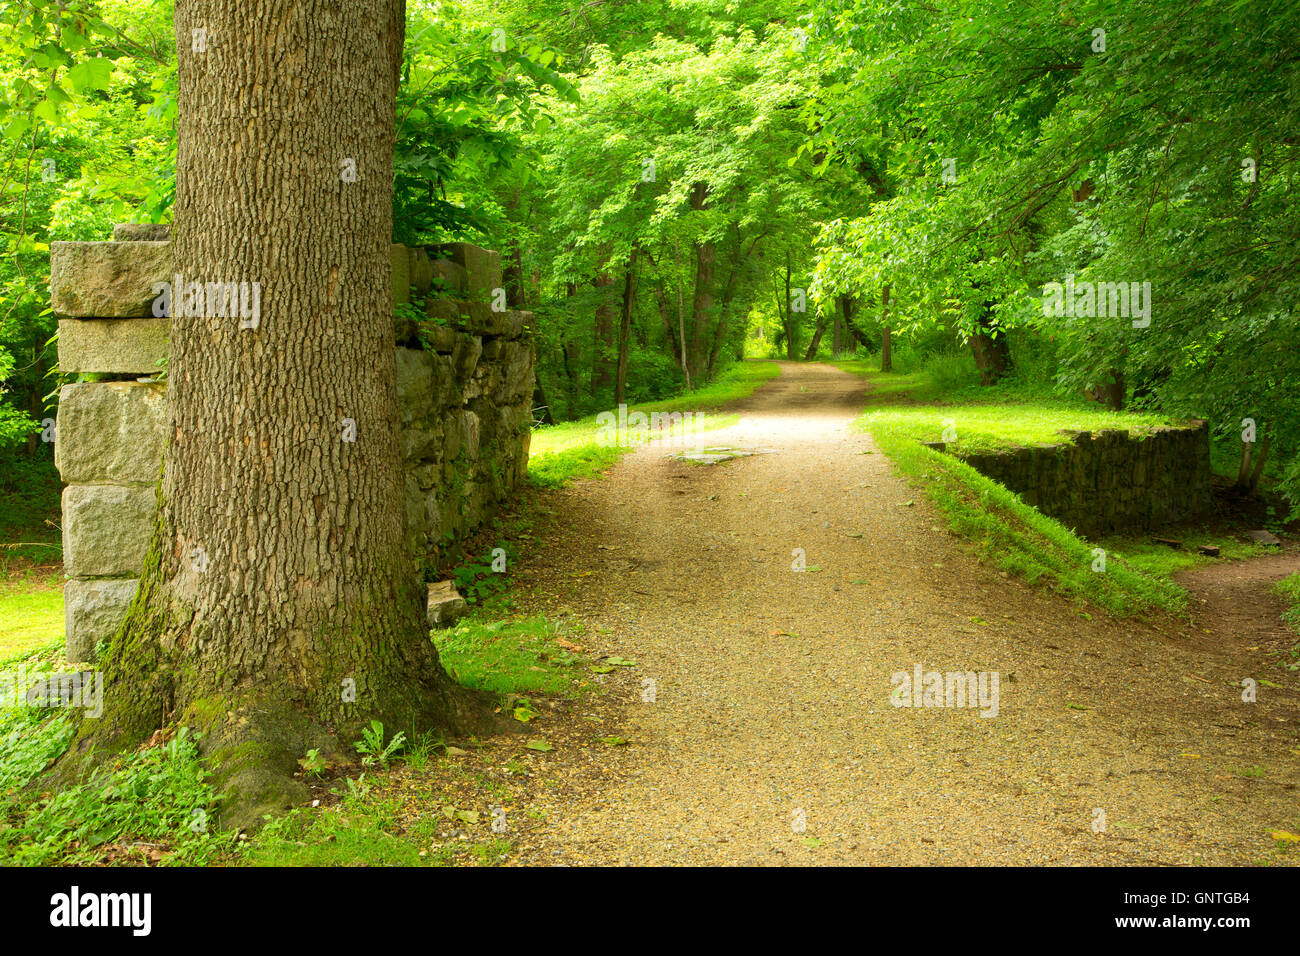 Towpath at Lock 38, Chesapeake and Ohio Canal National Historical Park, Maryland - Stock Image